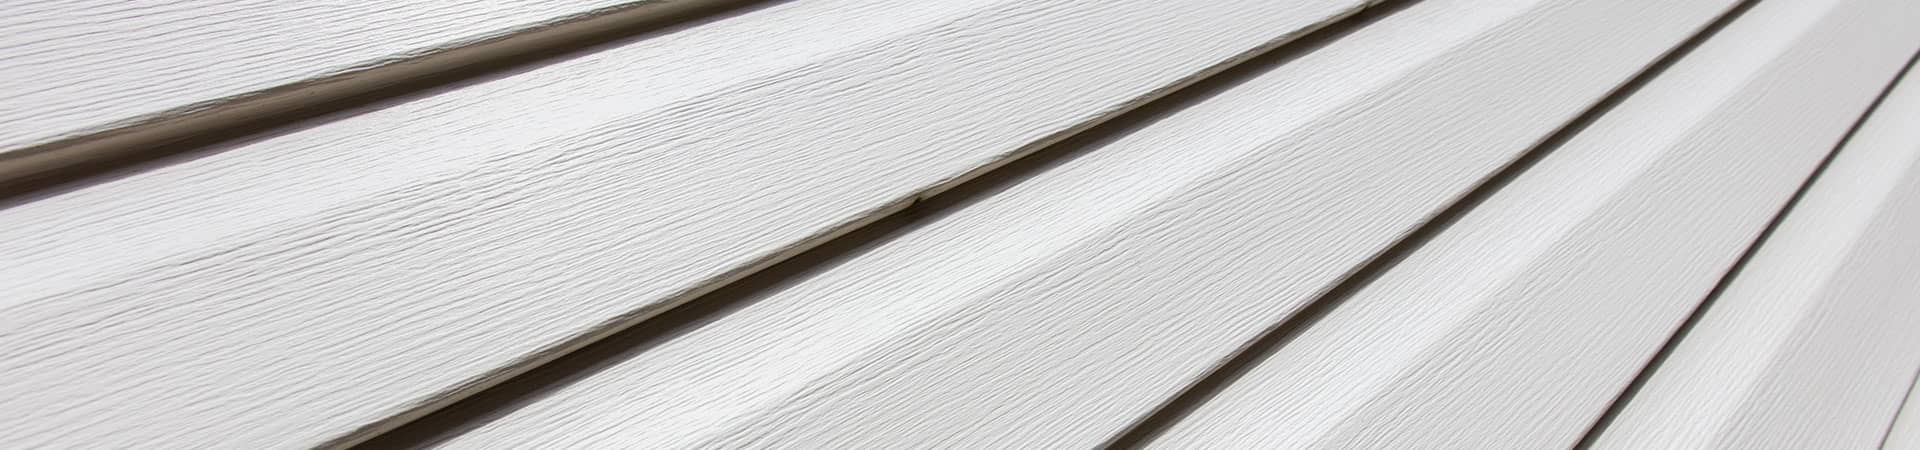 residential-siding-contractor.jpg